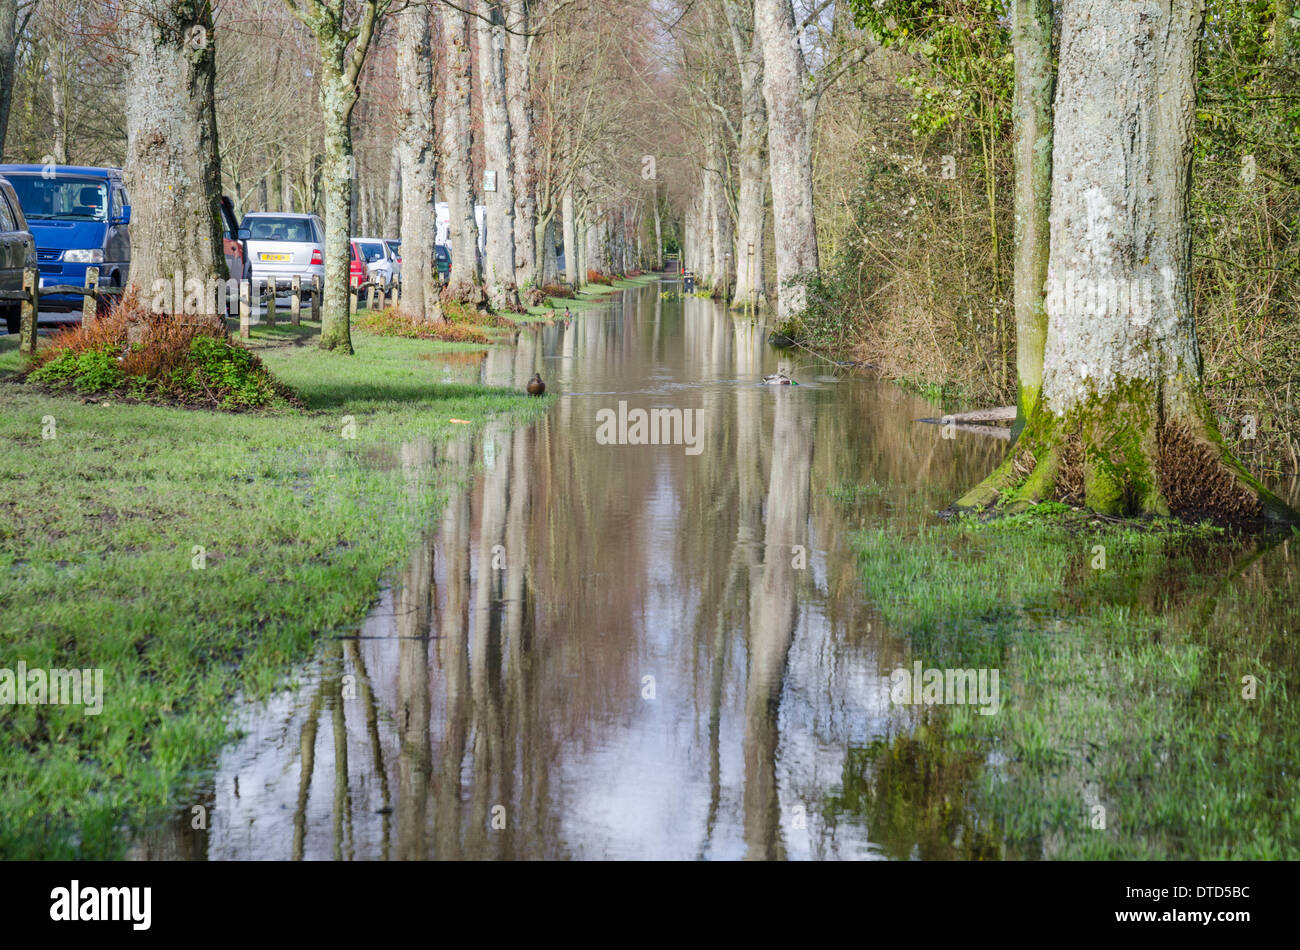 Flooded road and pavement in Arundel, West Sussex, England, UK, after storms and heavy rain in February 2014. - Stock Image